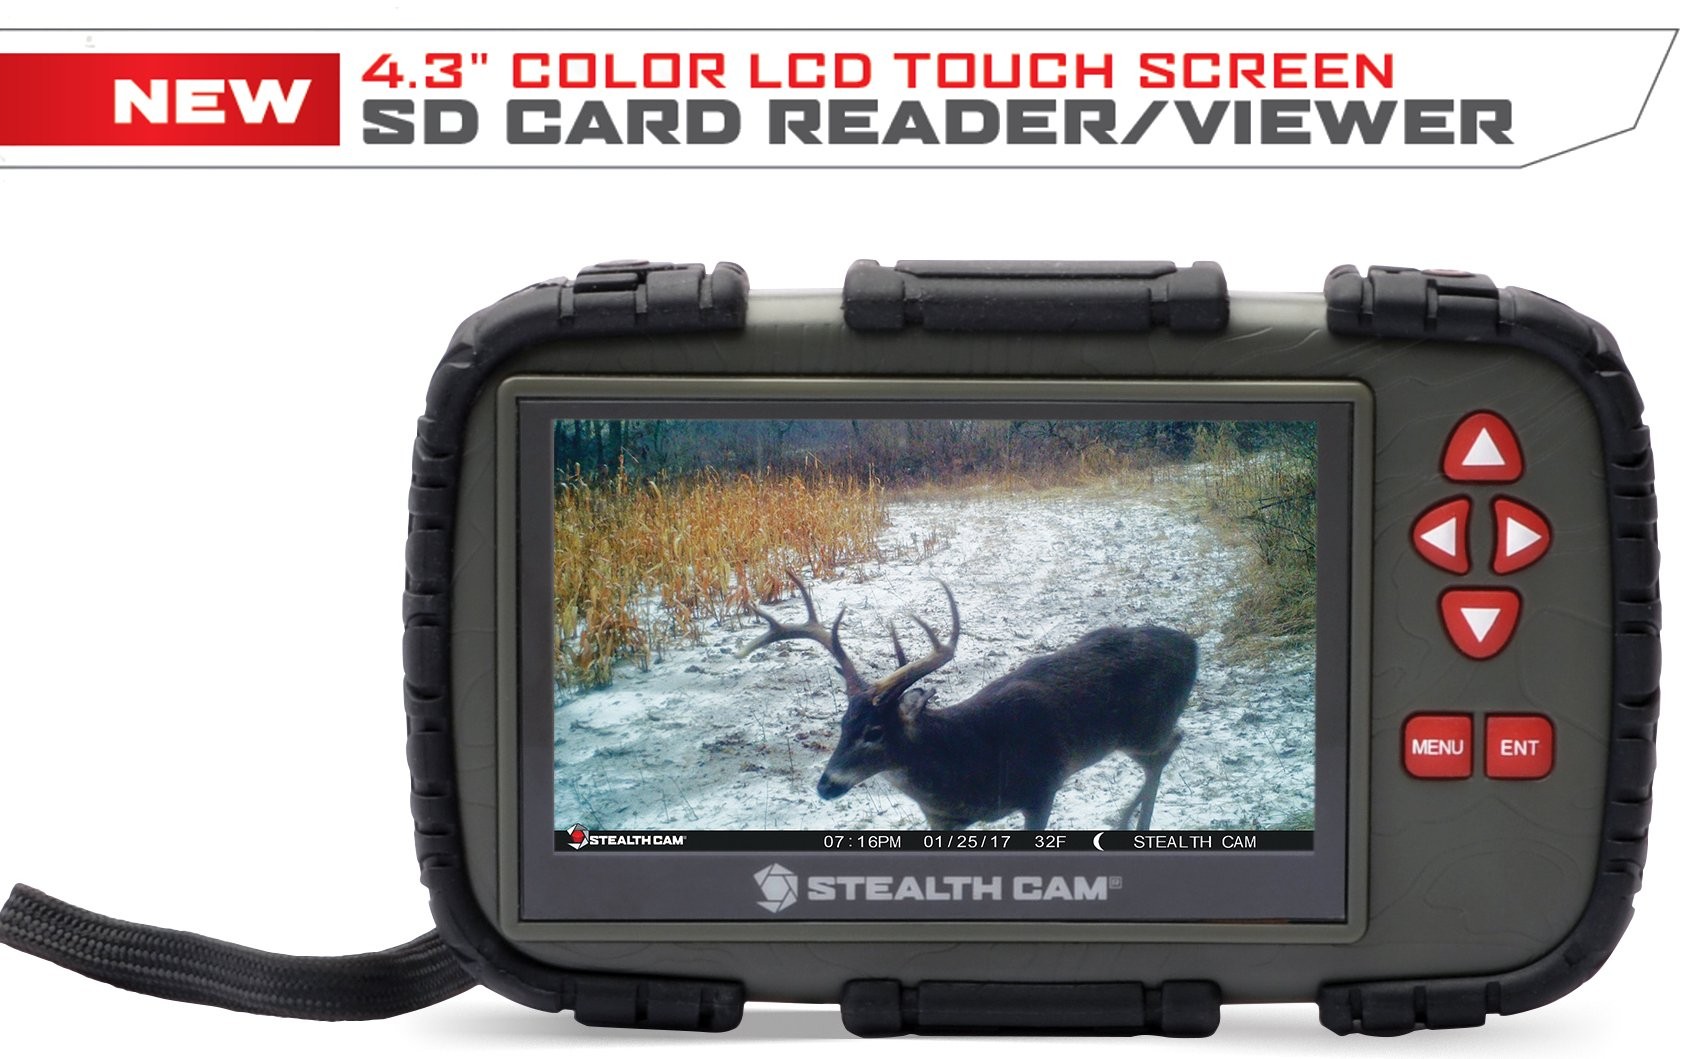 Stealth Cam 4.3'' Color LCD Touch Screen SD Card Reader/Viewer by Stealth Cam